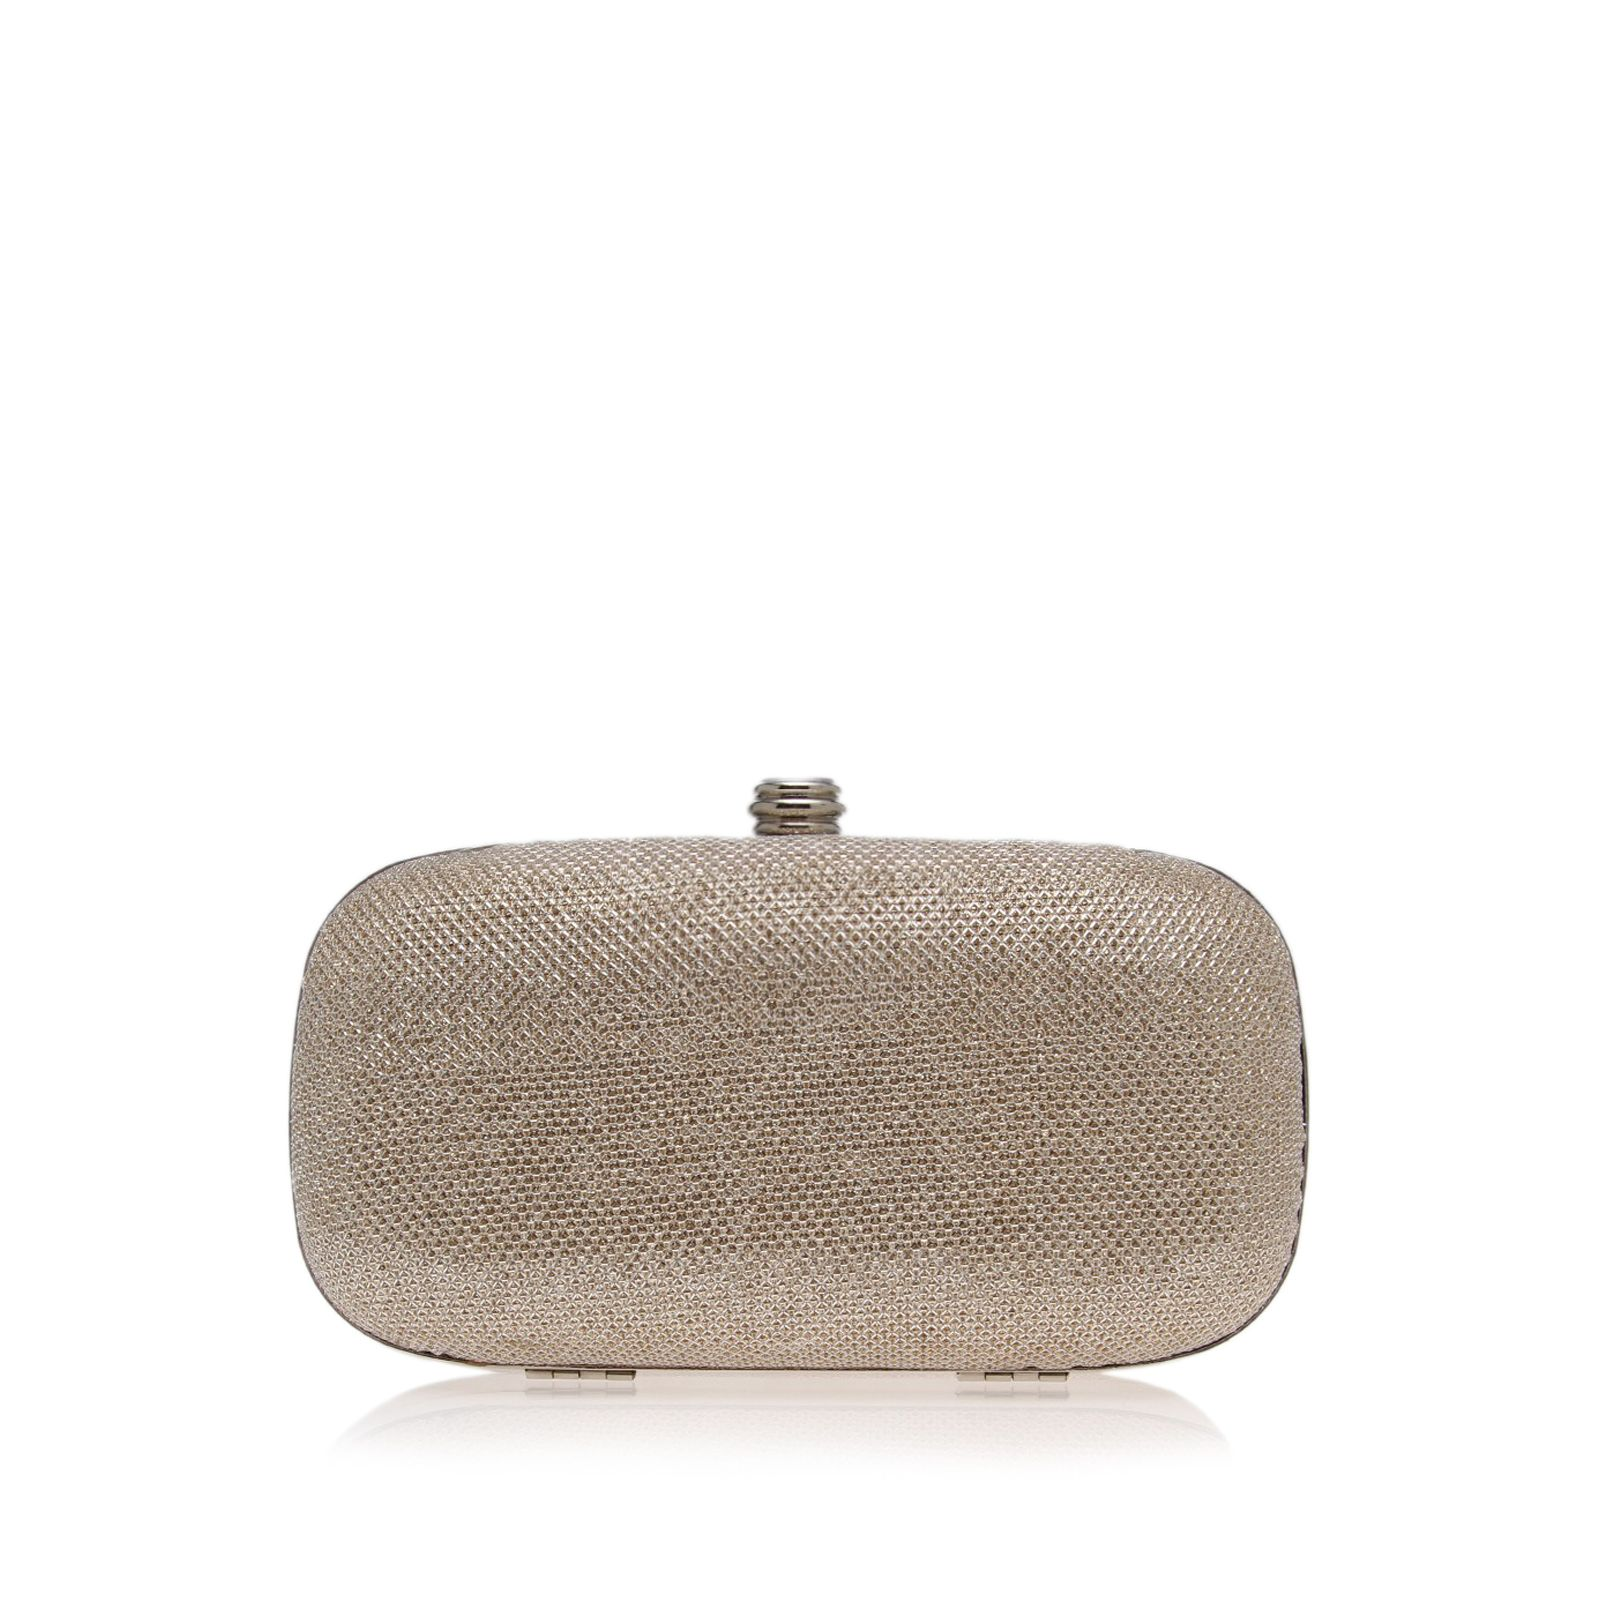 Carvela Darling clutch bag, Silver